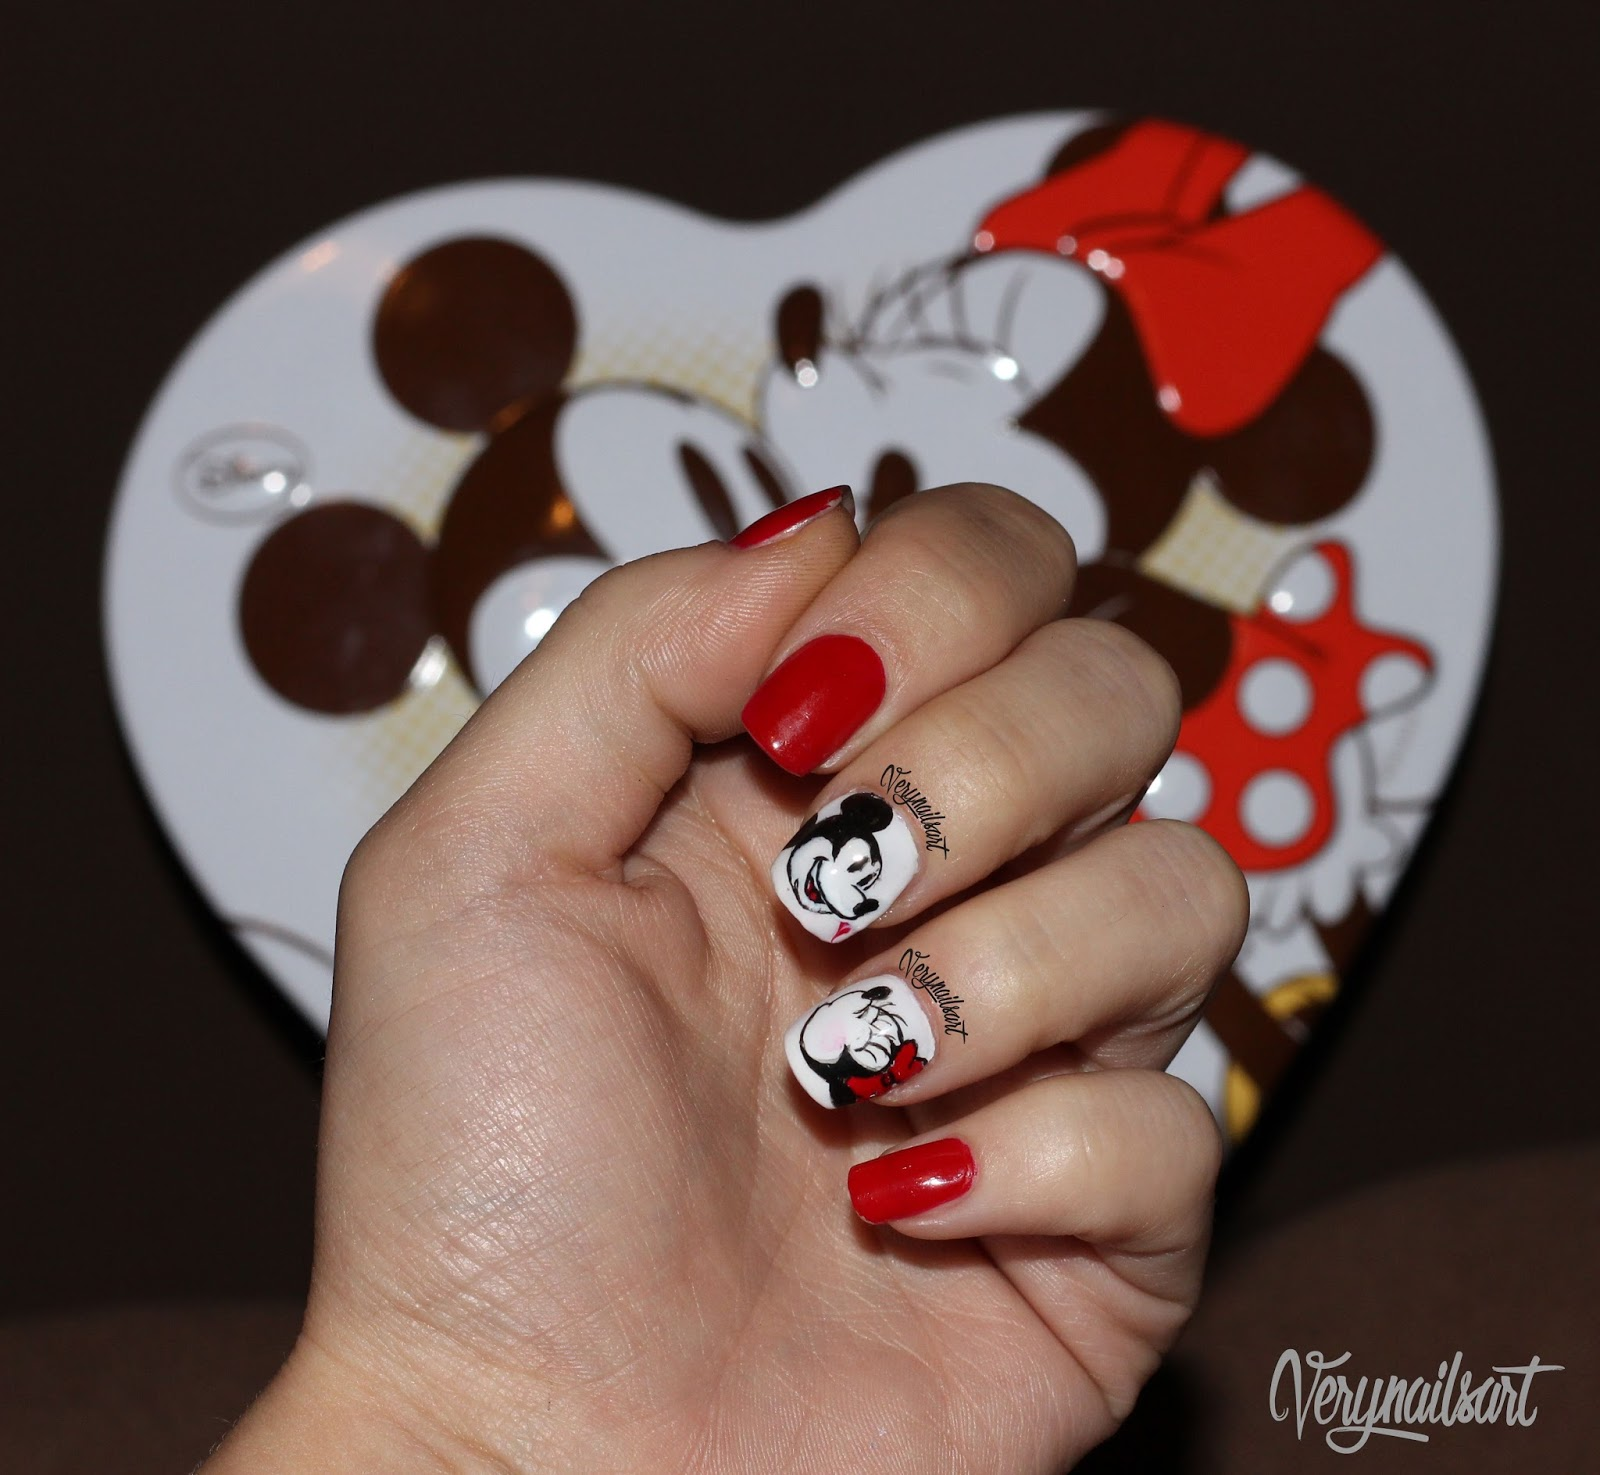 Uñas Decoradas Con Personajes De Disney Mickey Y Minnie